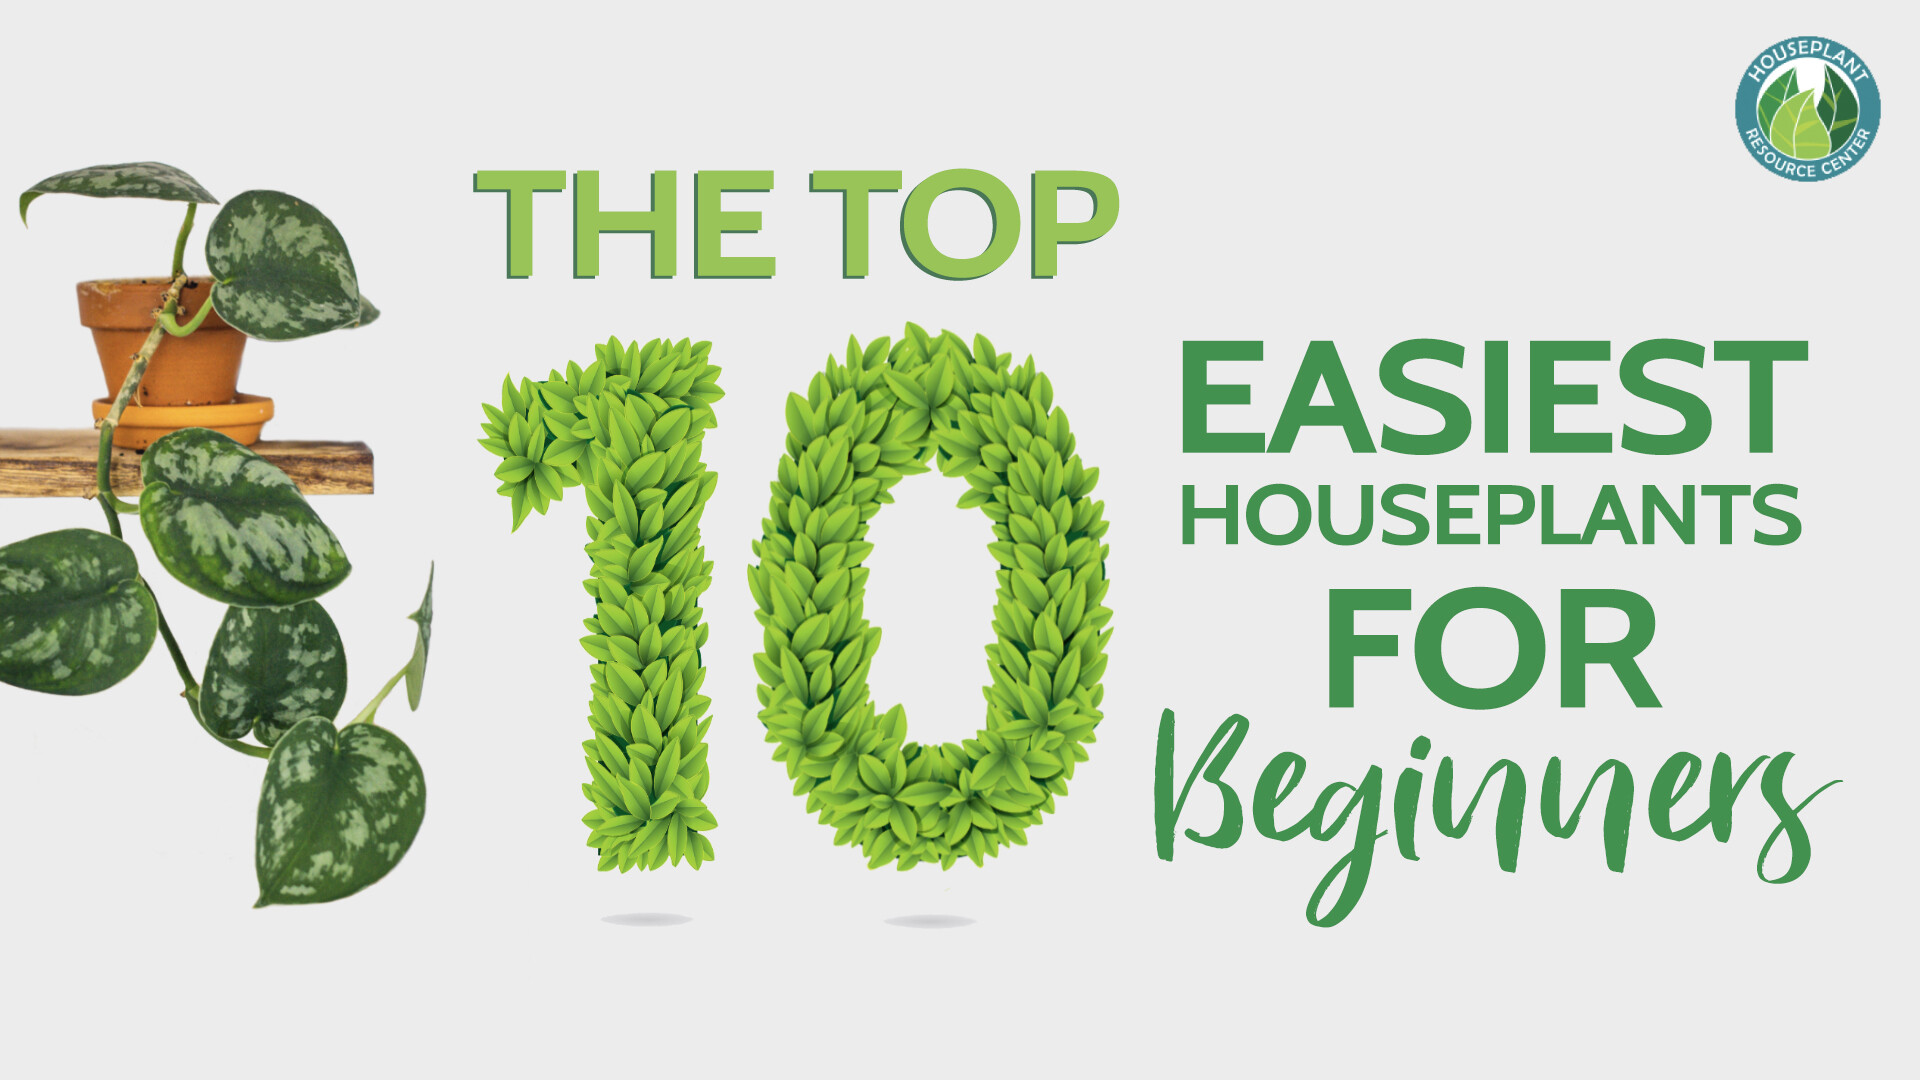 Easiest Houseplants for Beginners